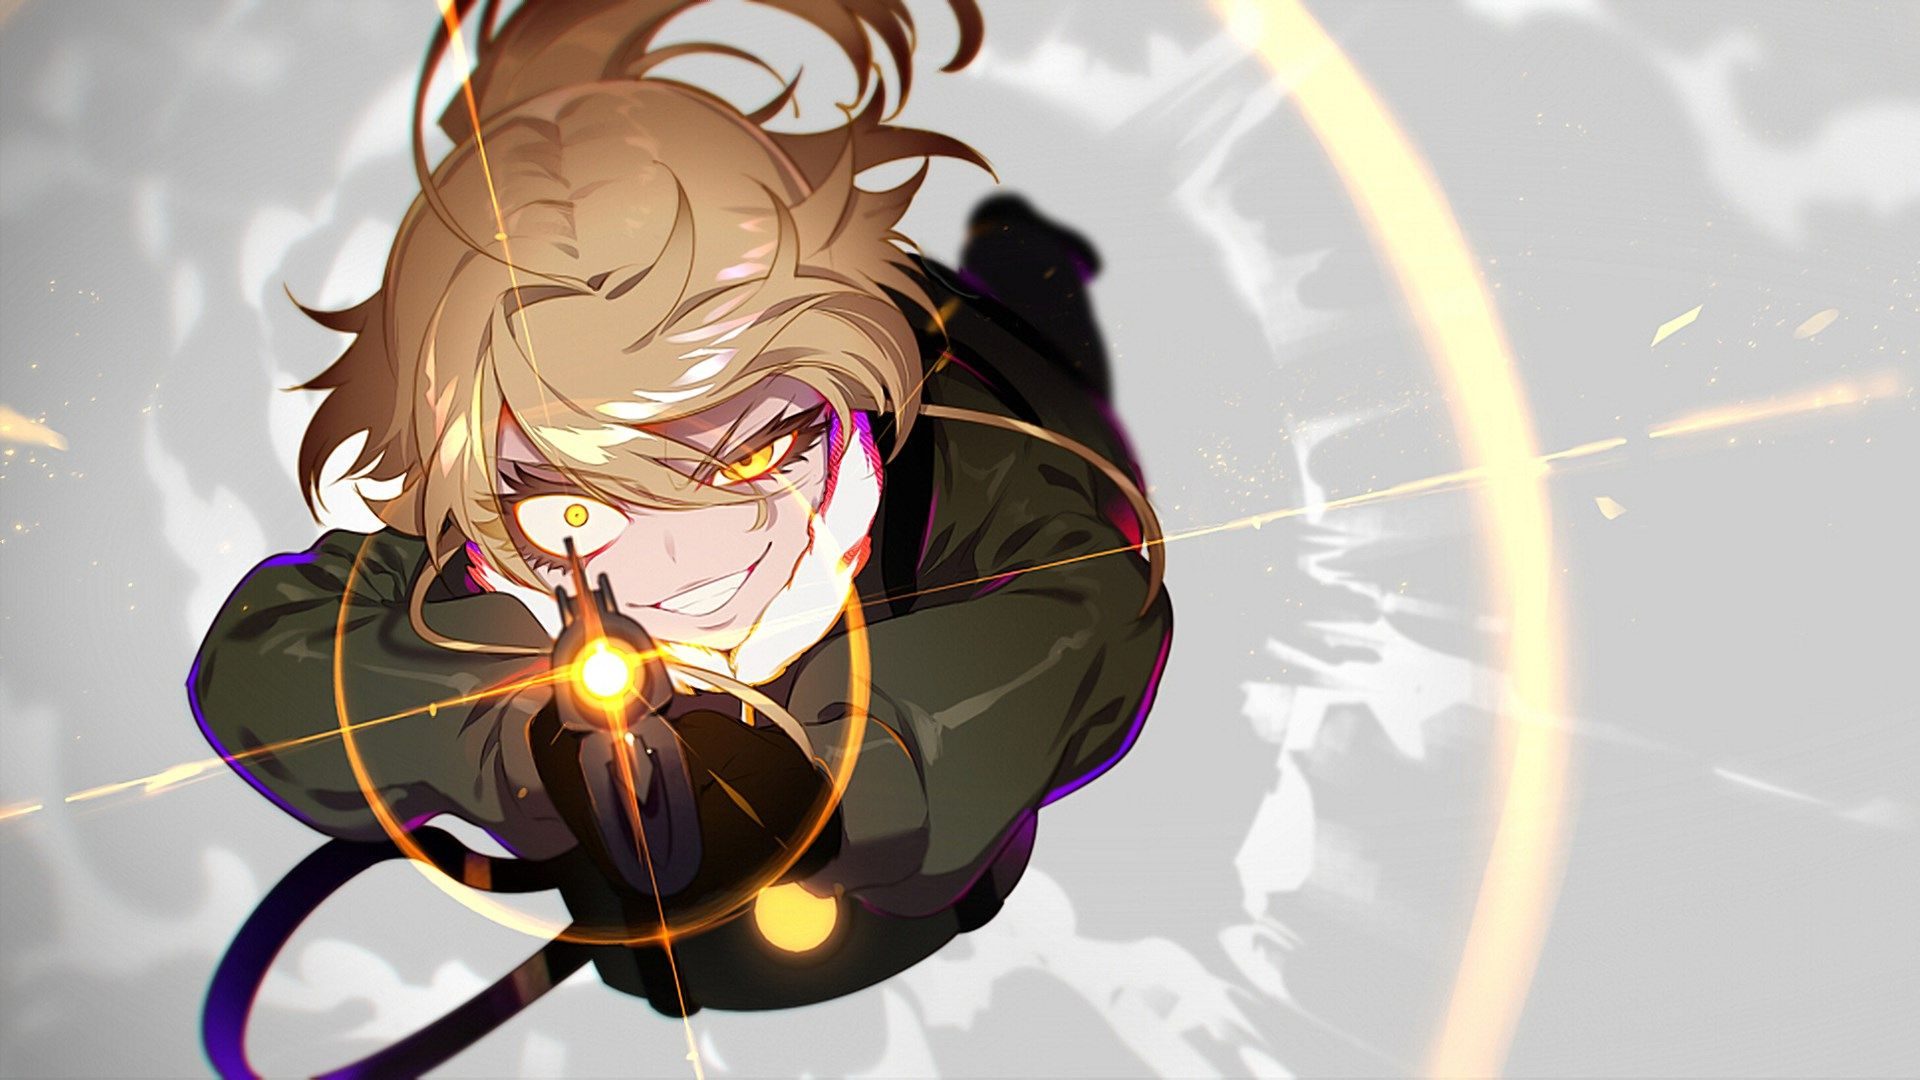 Computer Wallpaper For Youjo Senki Gina Bush 2017 03 25 幼女